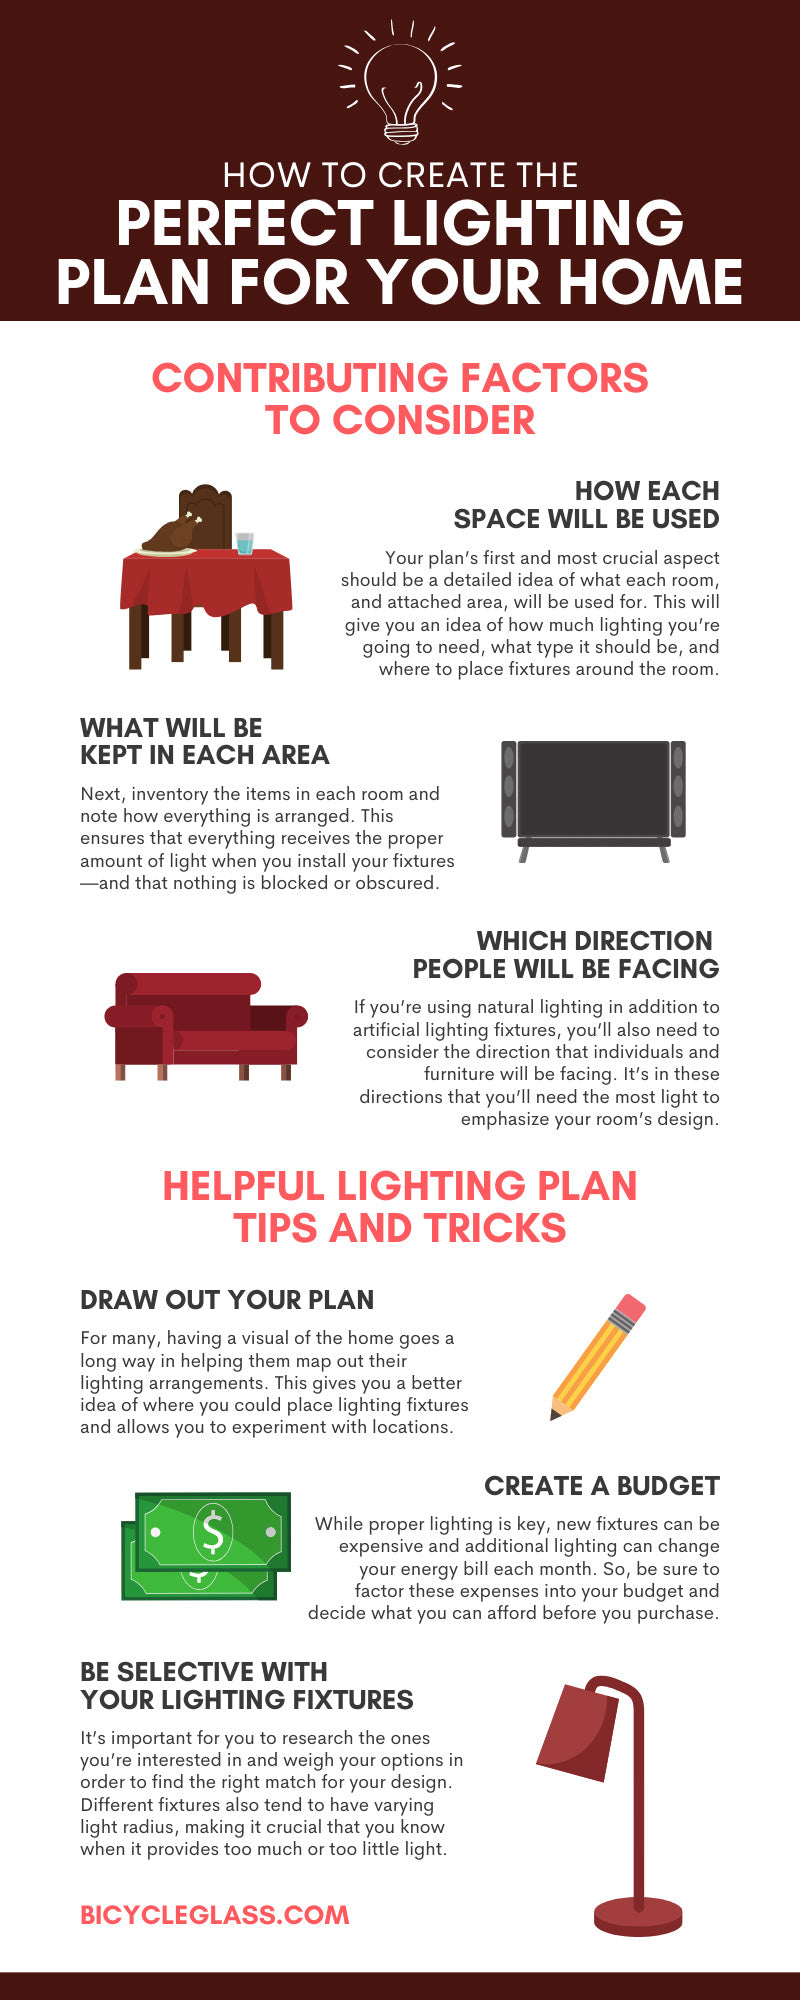 How to Create the Perfect Lighting Plan for Your Home